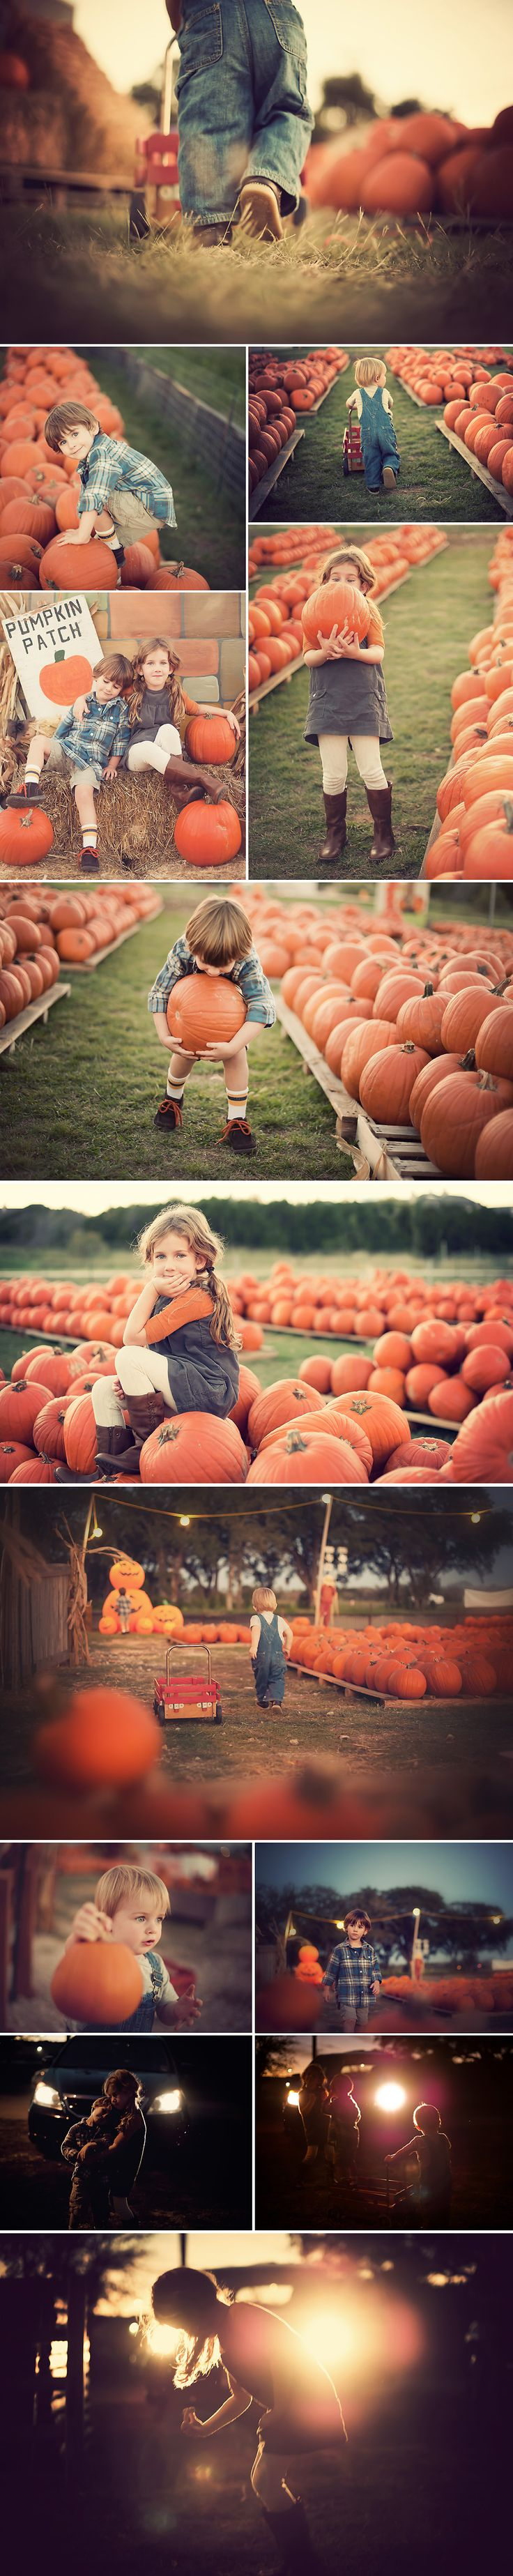 This year I wanted something a little different from the same pumpkin patch shots I get every year... I wanted more of a creative challenge for myself while keeping our family tradition. So this year we took our kids after the sun had set and played with only the available light from the horizon... #photography_tips #lighting